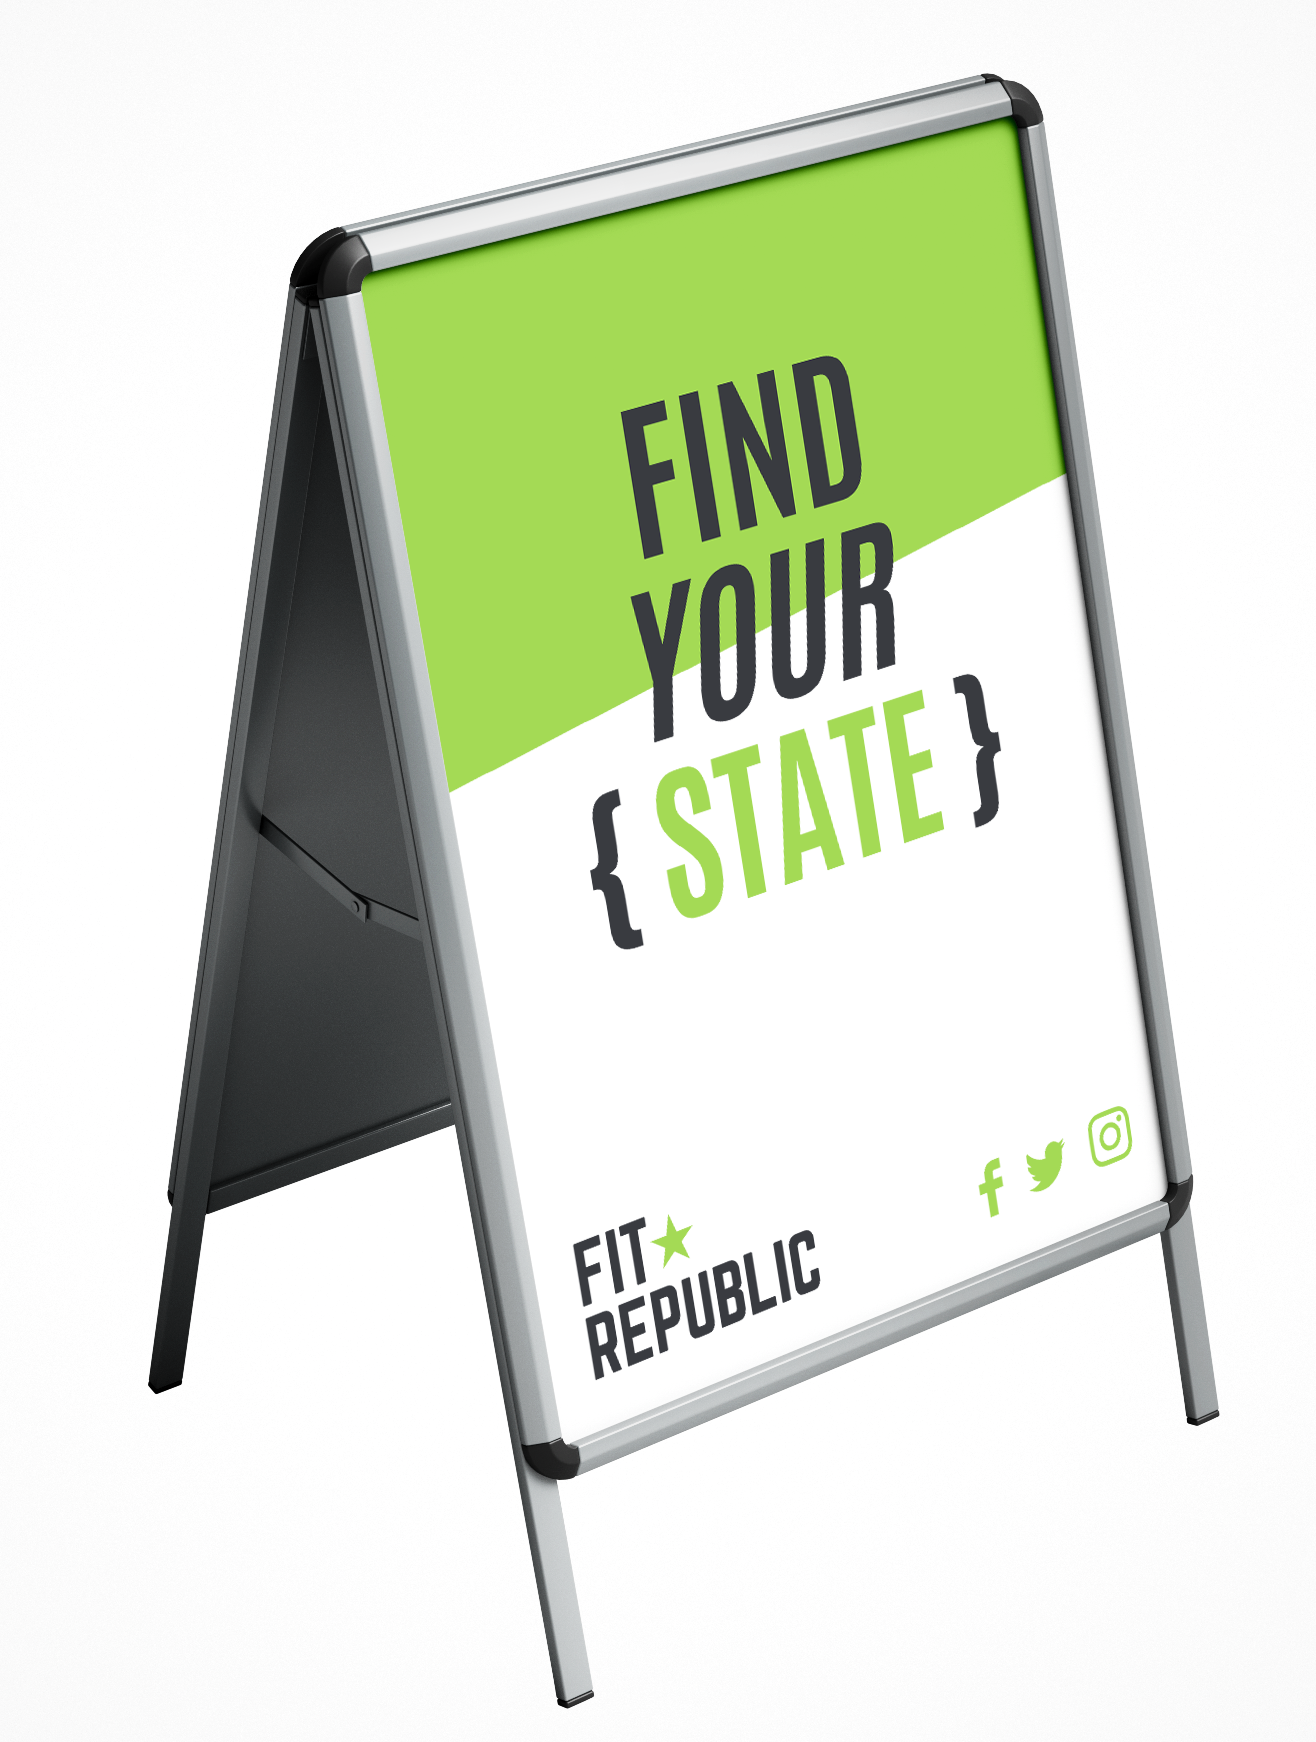 fit-republic-find-your-state-a-frame.png